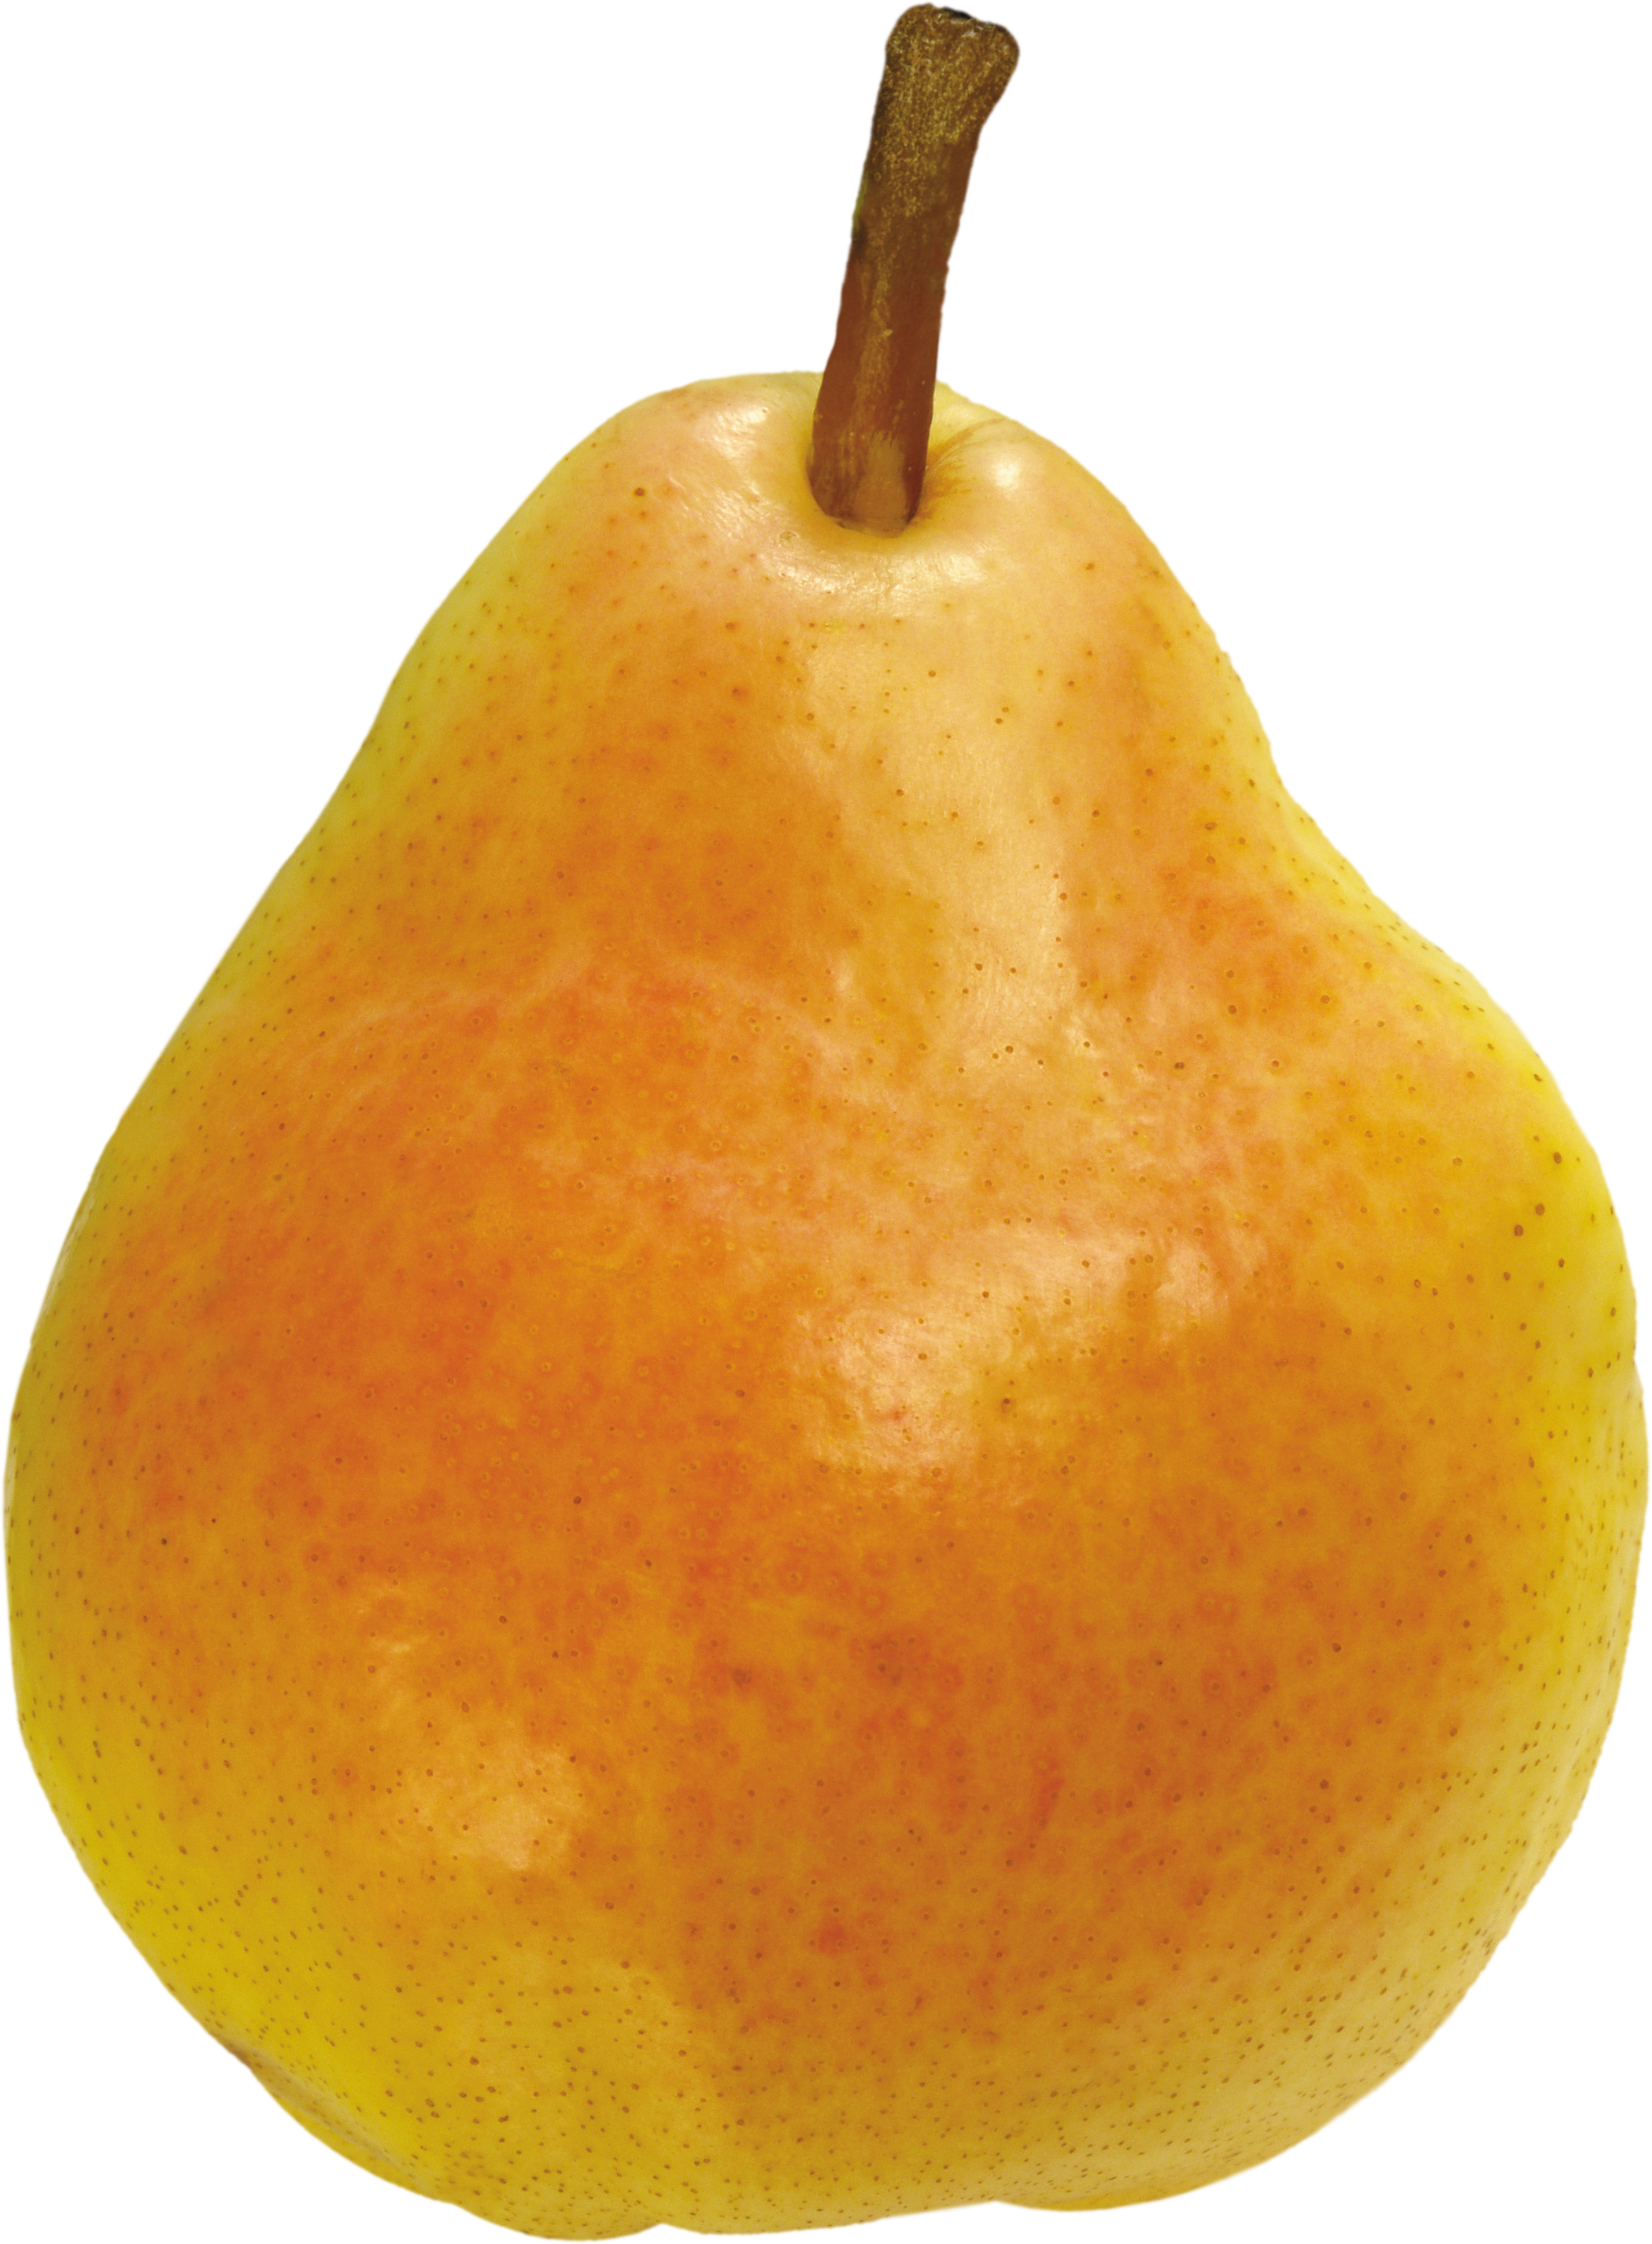 Pear PNG - 8921